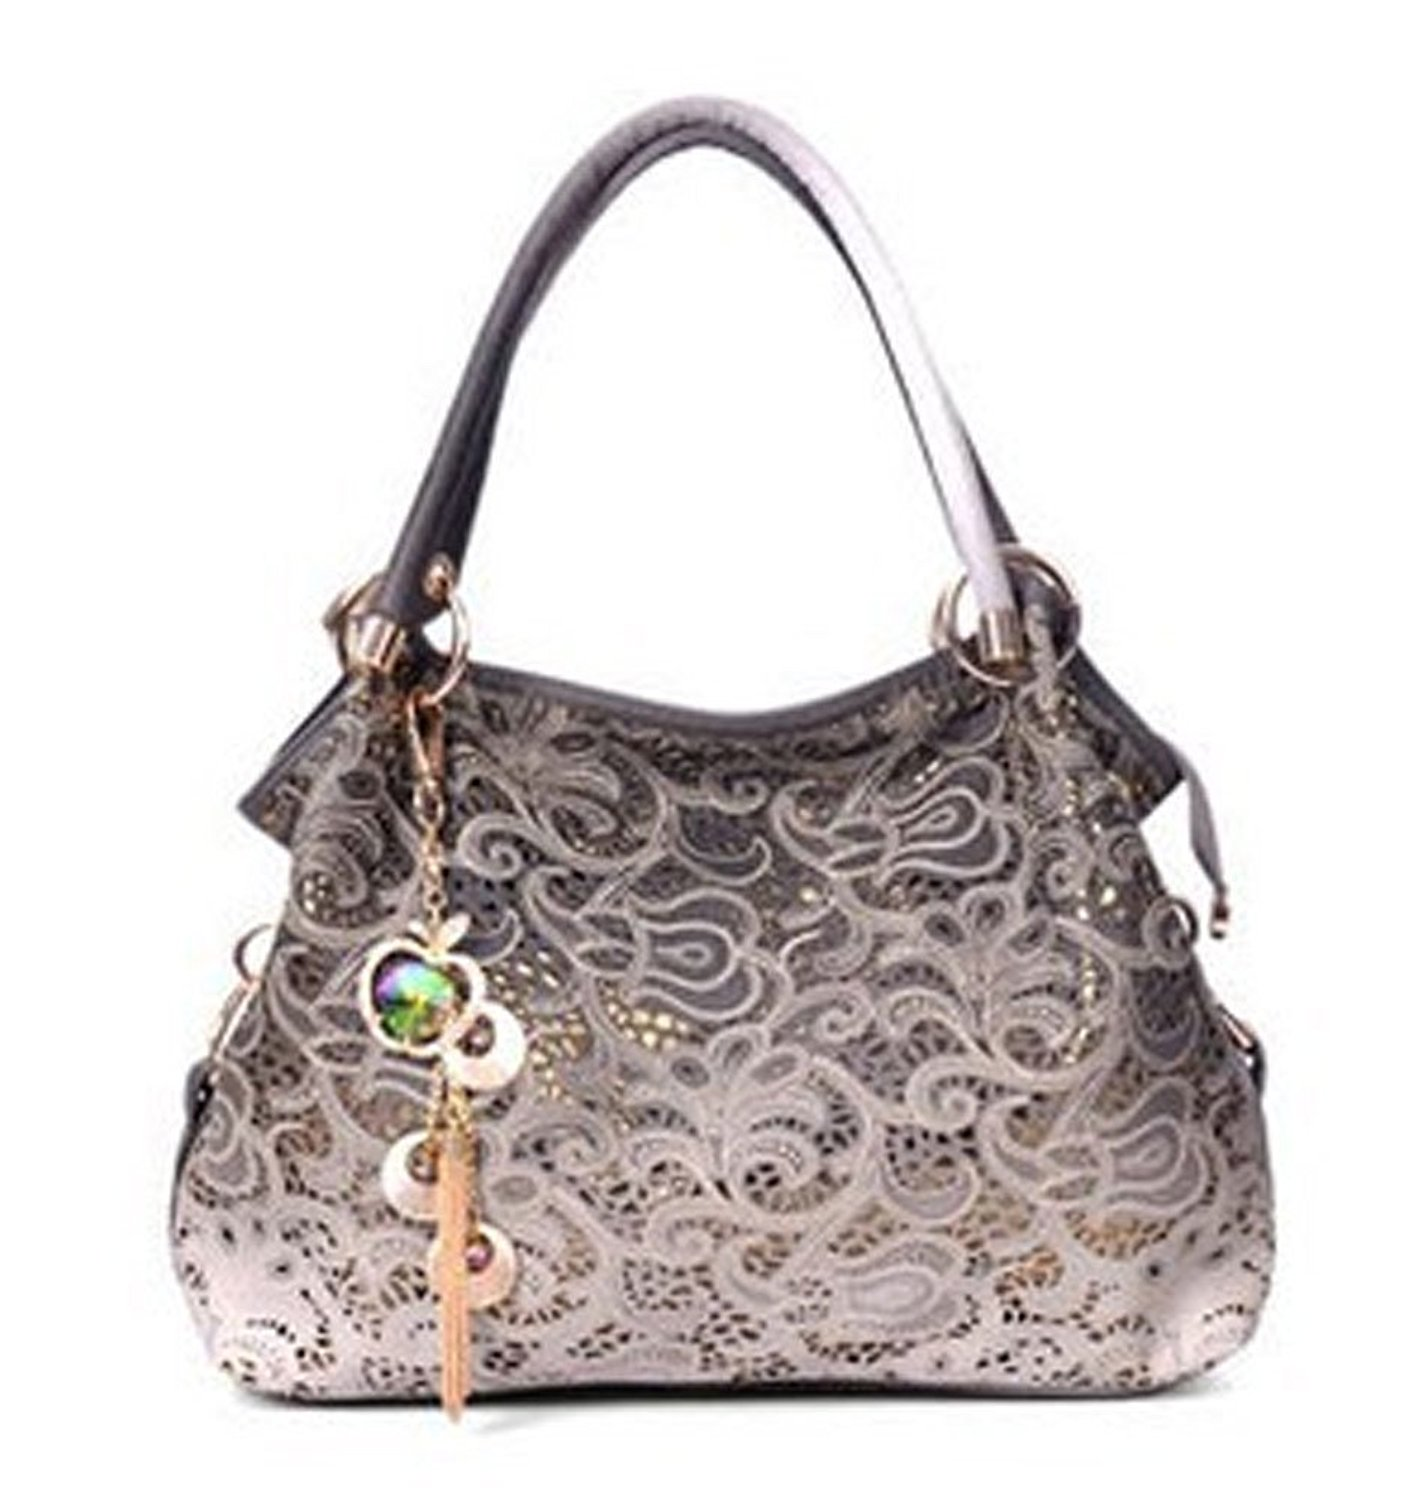 80455c6913 Get Quotations · Flada Ladies Leather Hobo Handbags Clearance Tote Bags  Purses for Women